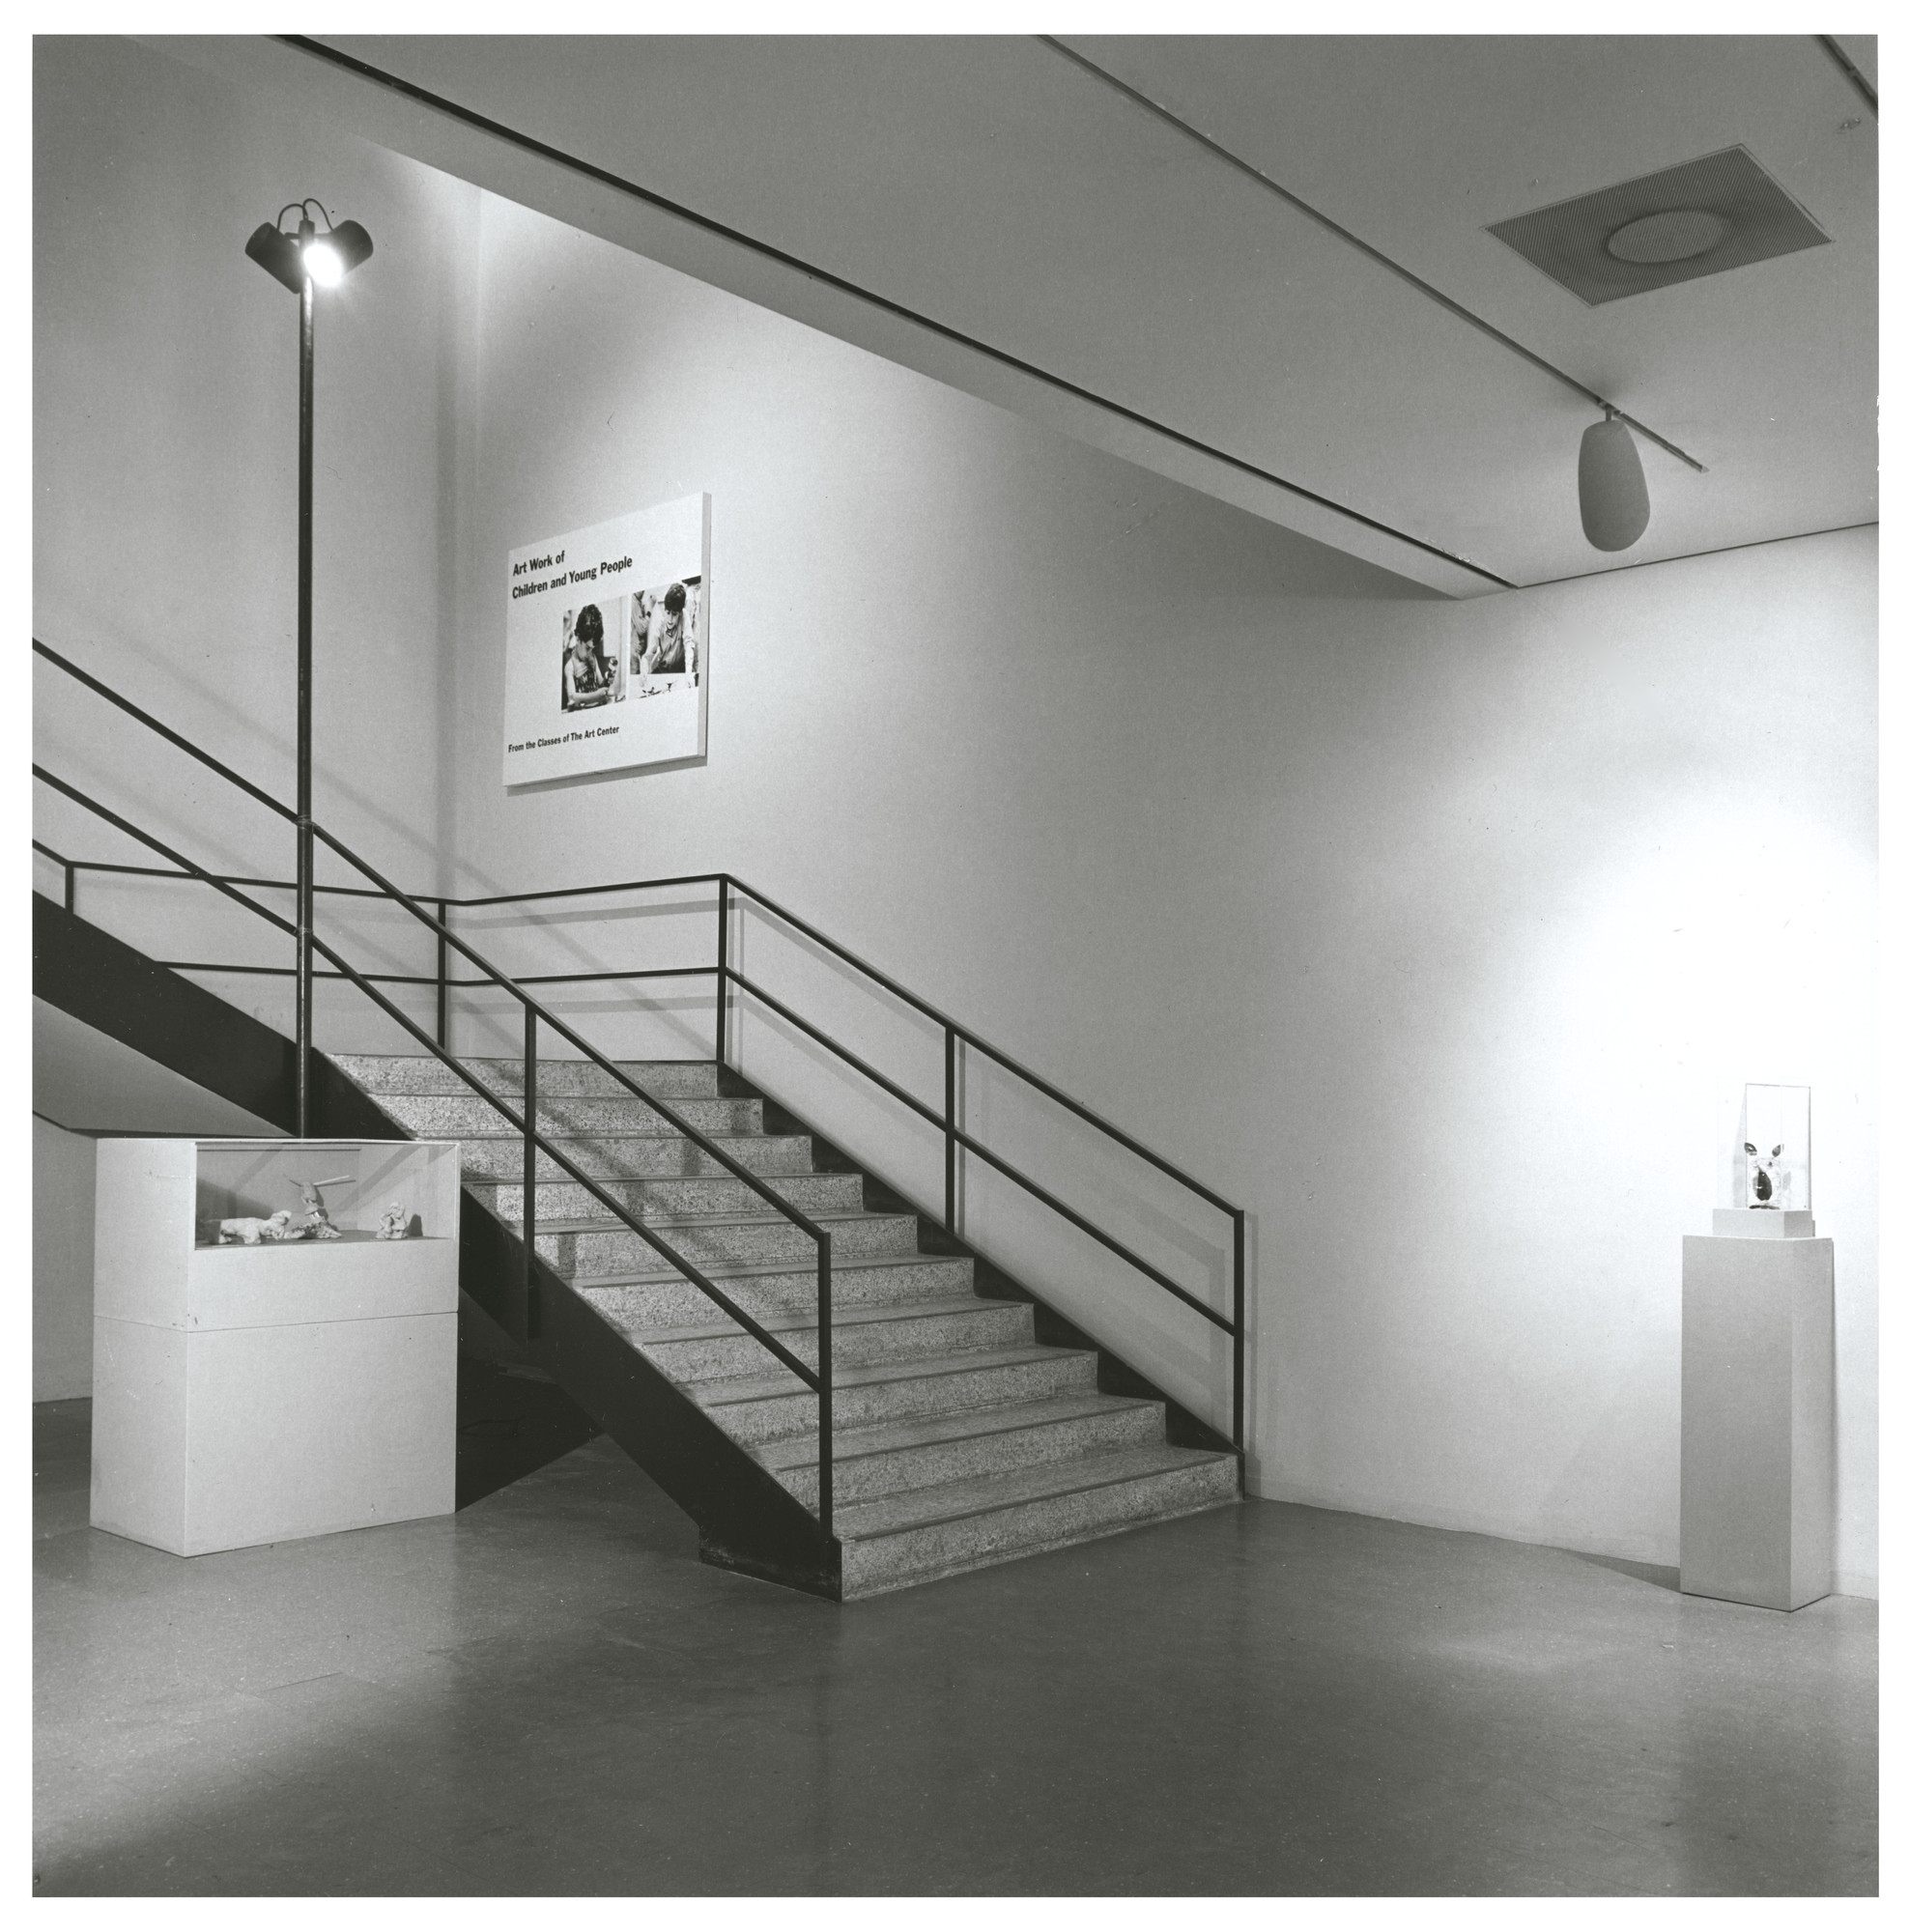 "Installation view of the exhibition, ""Art Work by Children and Young People from the Classes of the Art Center"" June 7, 1965–July 30, 1965. Photographic Archive. The Museum of Modern Art Archives, New York. IN767b.1. Photograph by Rolf Petersen."